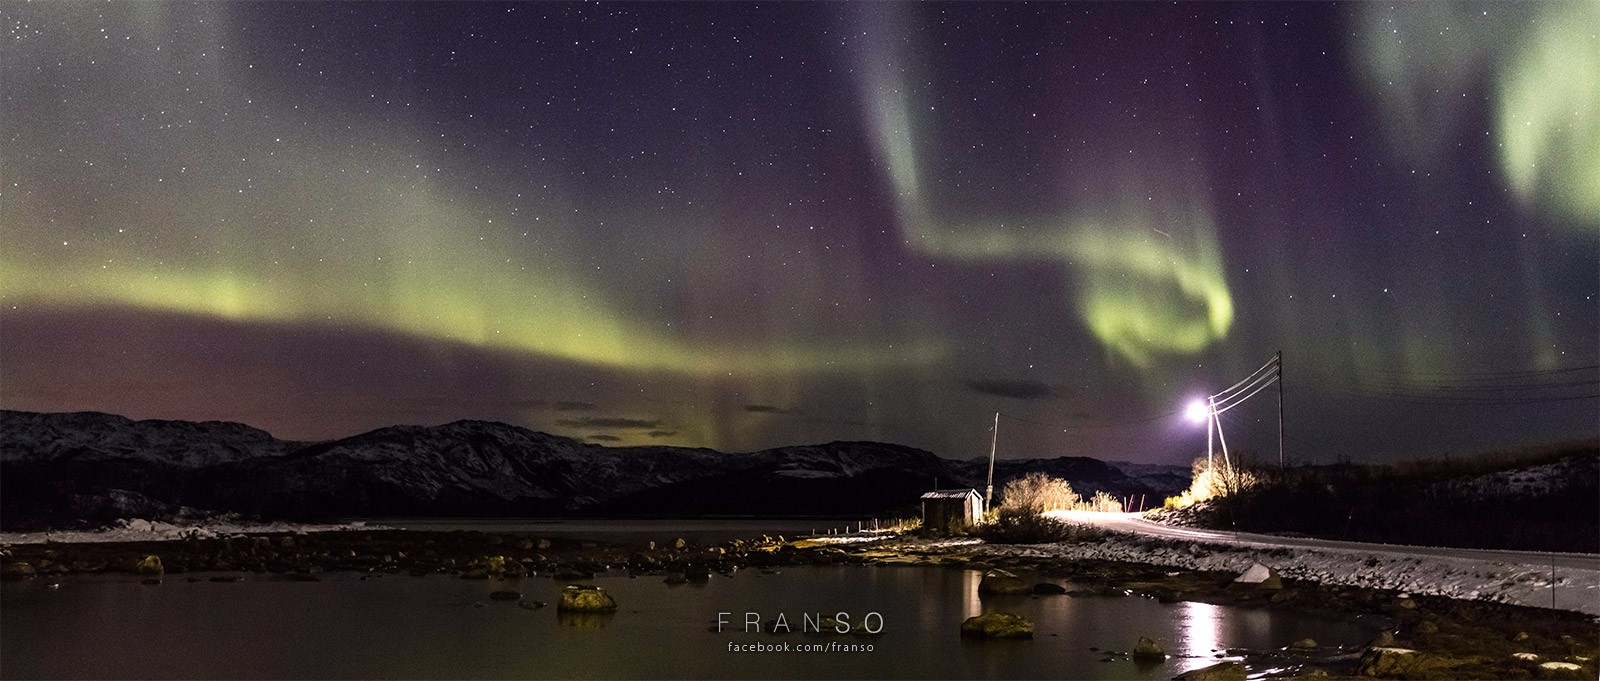 Landscape | Oversea | The Northern Light  | Lanabukt, Norway